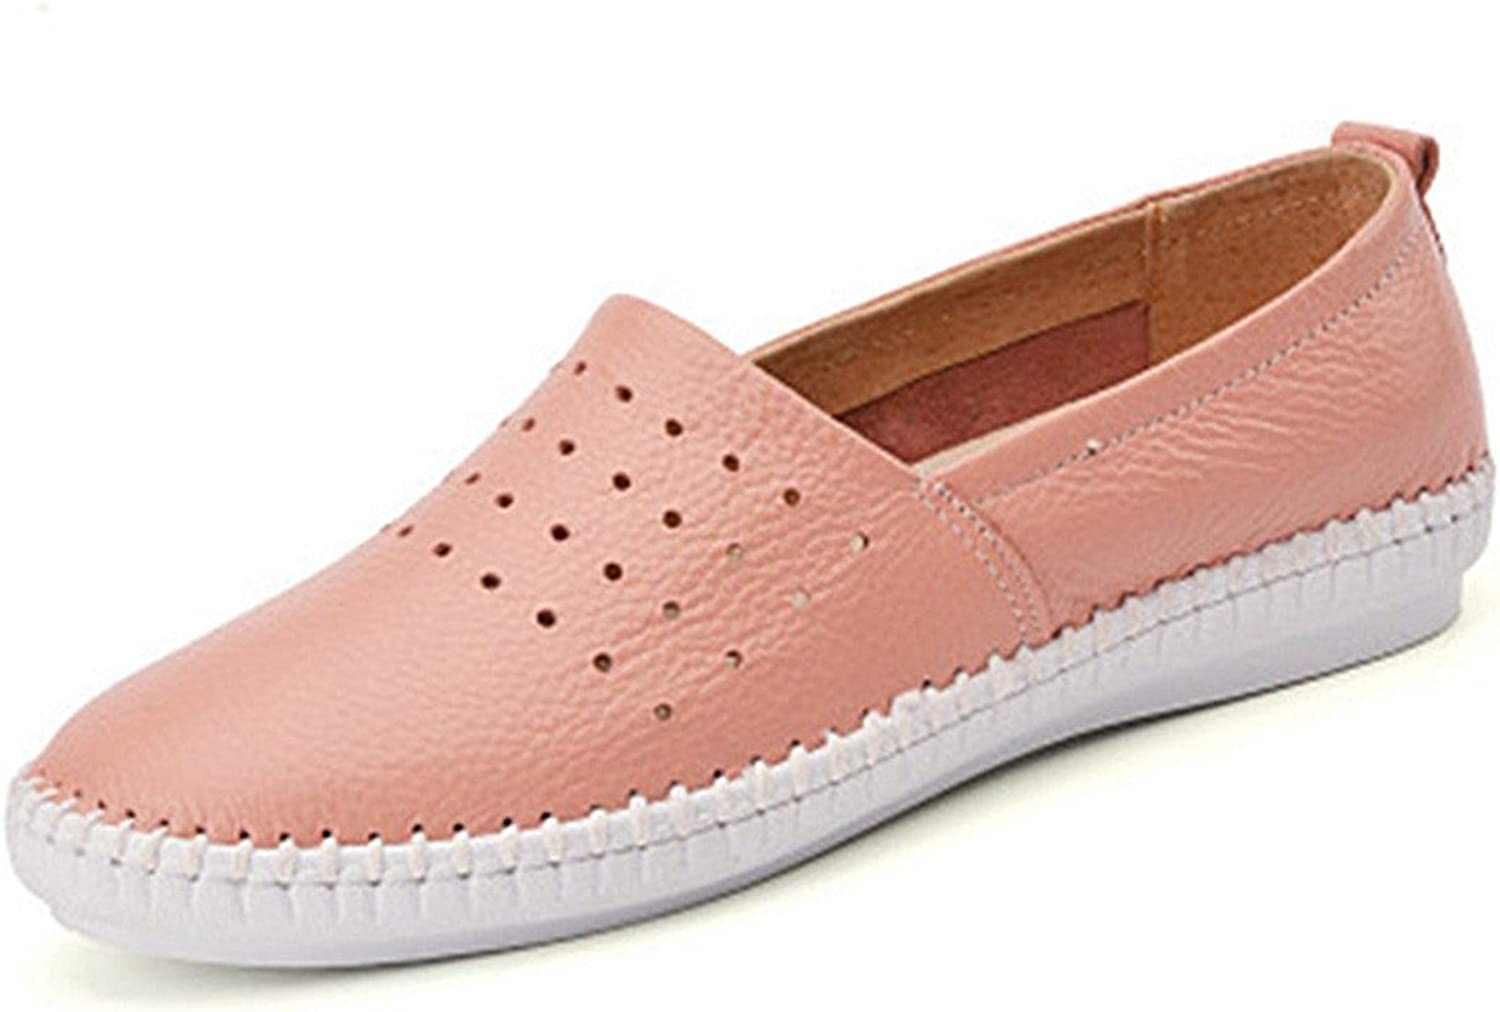 York Zhu Women's Loafers, Hollow Out Slip On Round Toe Flats, Ladies Casual shoes